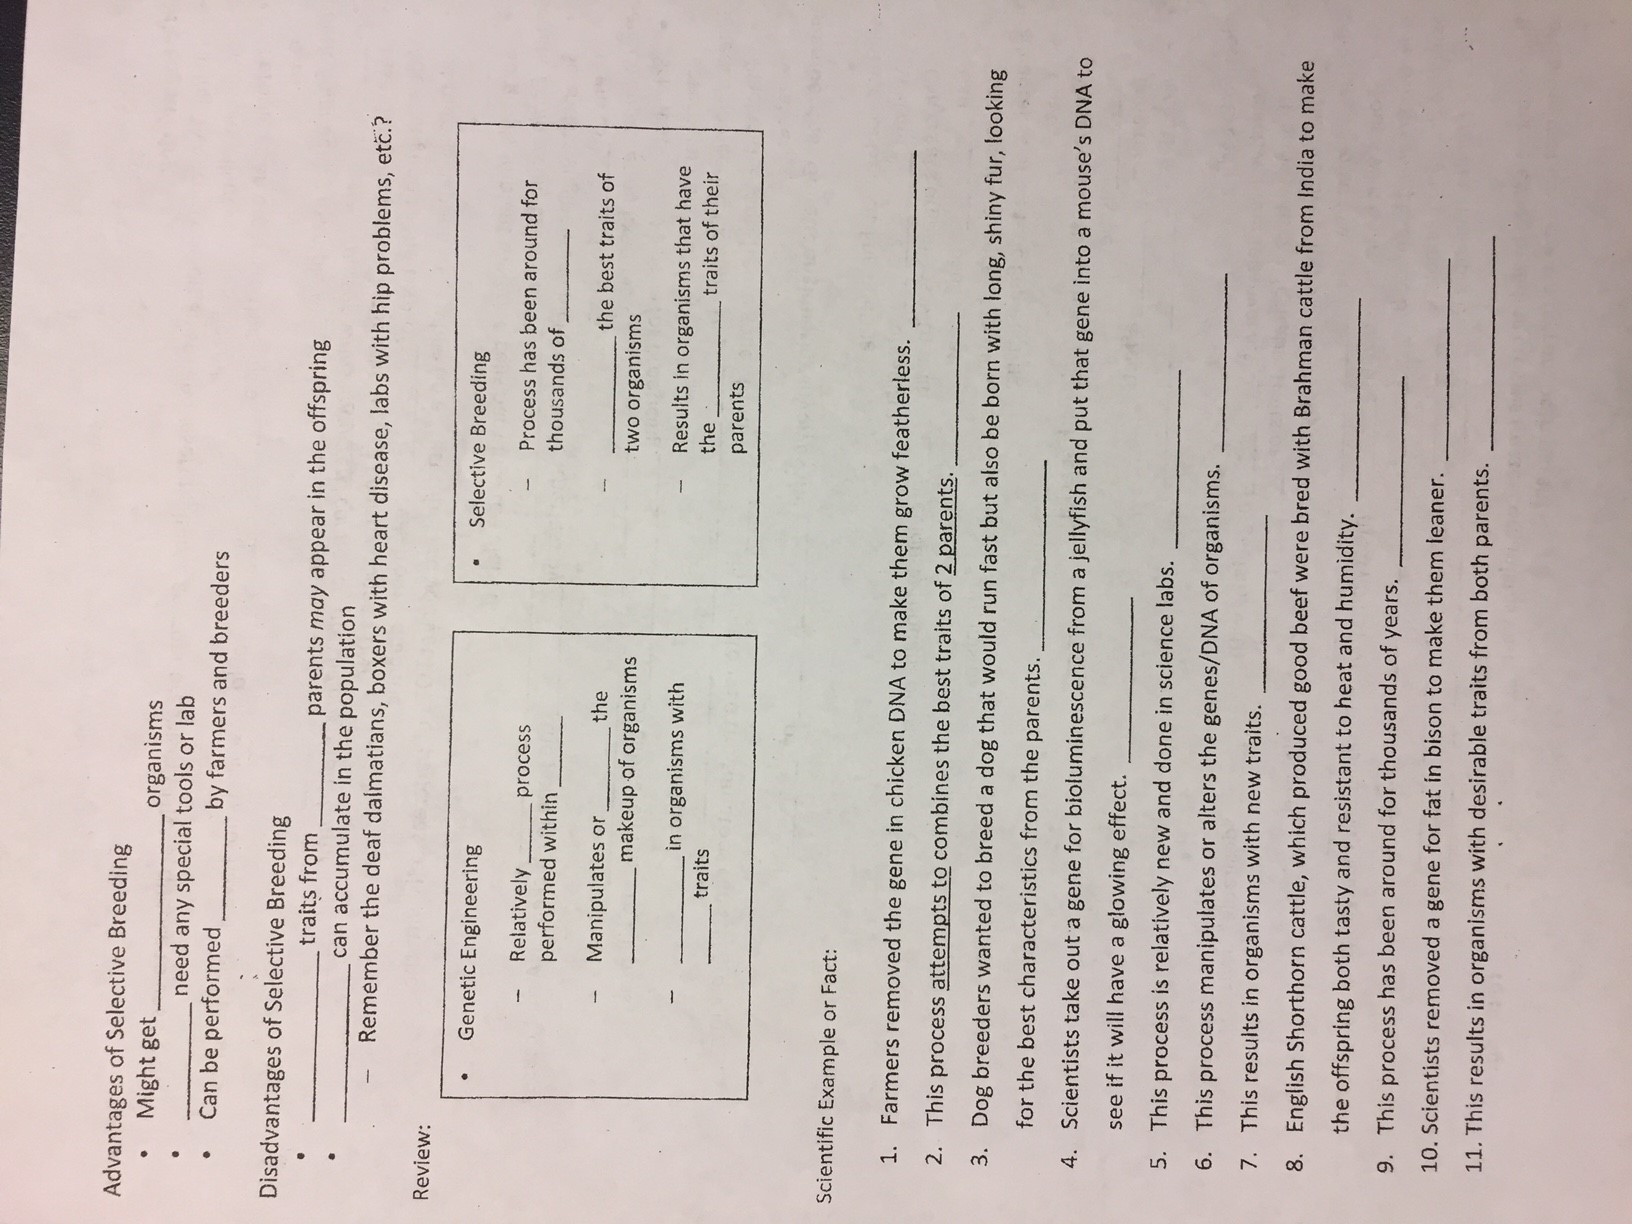 Selective Breeding Worksheet Middle School Selective Breeding Notes 2